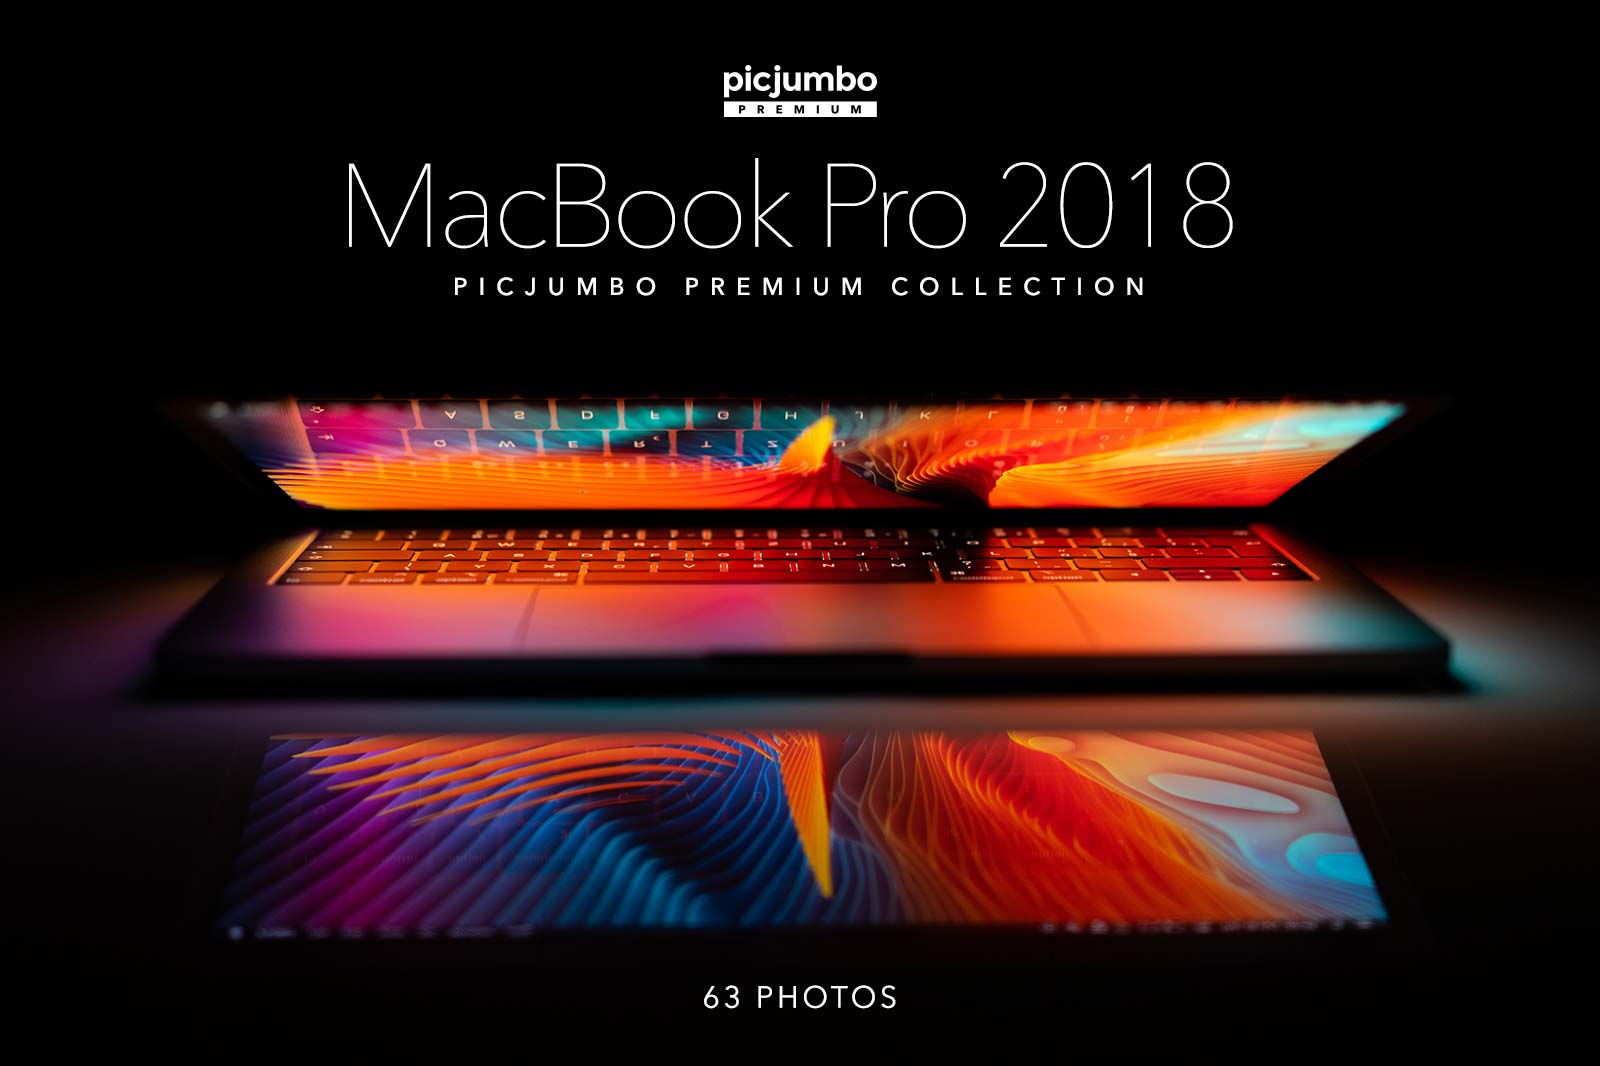 MacBook Pro 2018 — get it now in picjumbo PREMIUM!